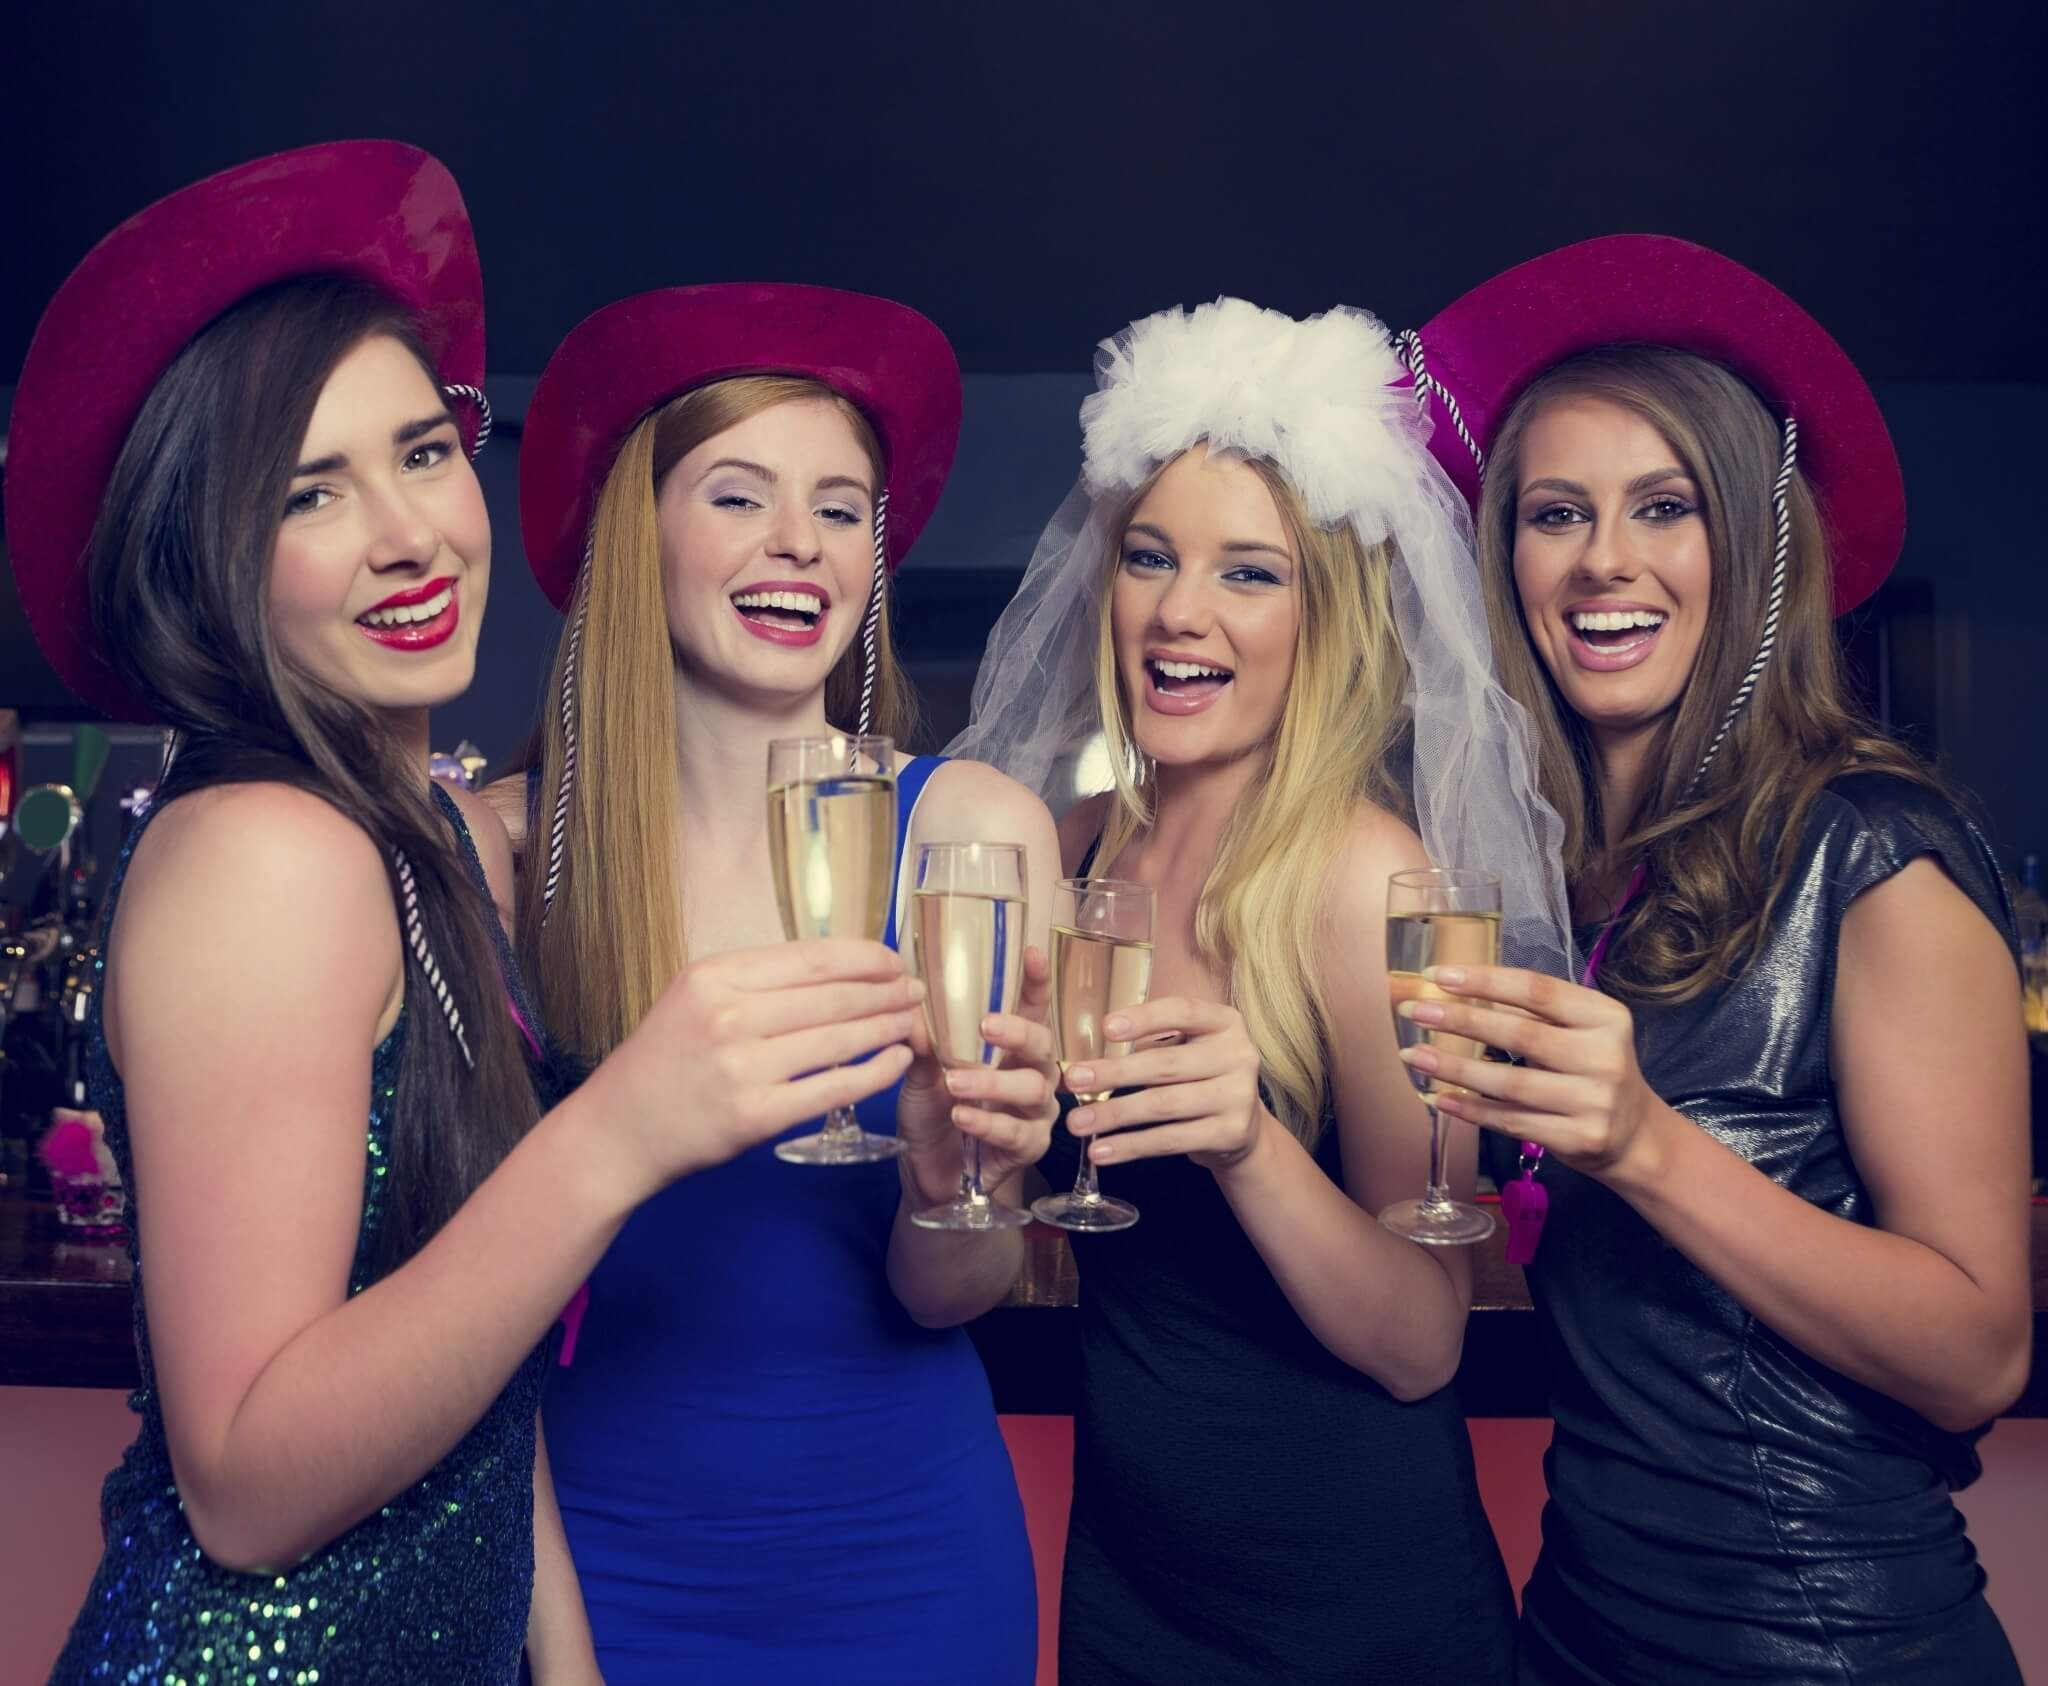 Laughing-friends-clinking-champagne-glasses-at-a-hen-night-000044751376_Double-1.jpg.jpeg